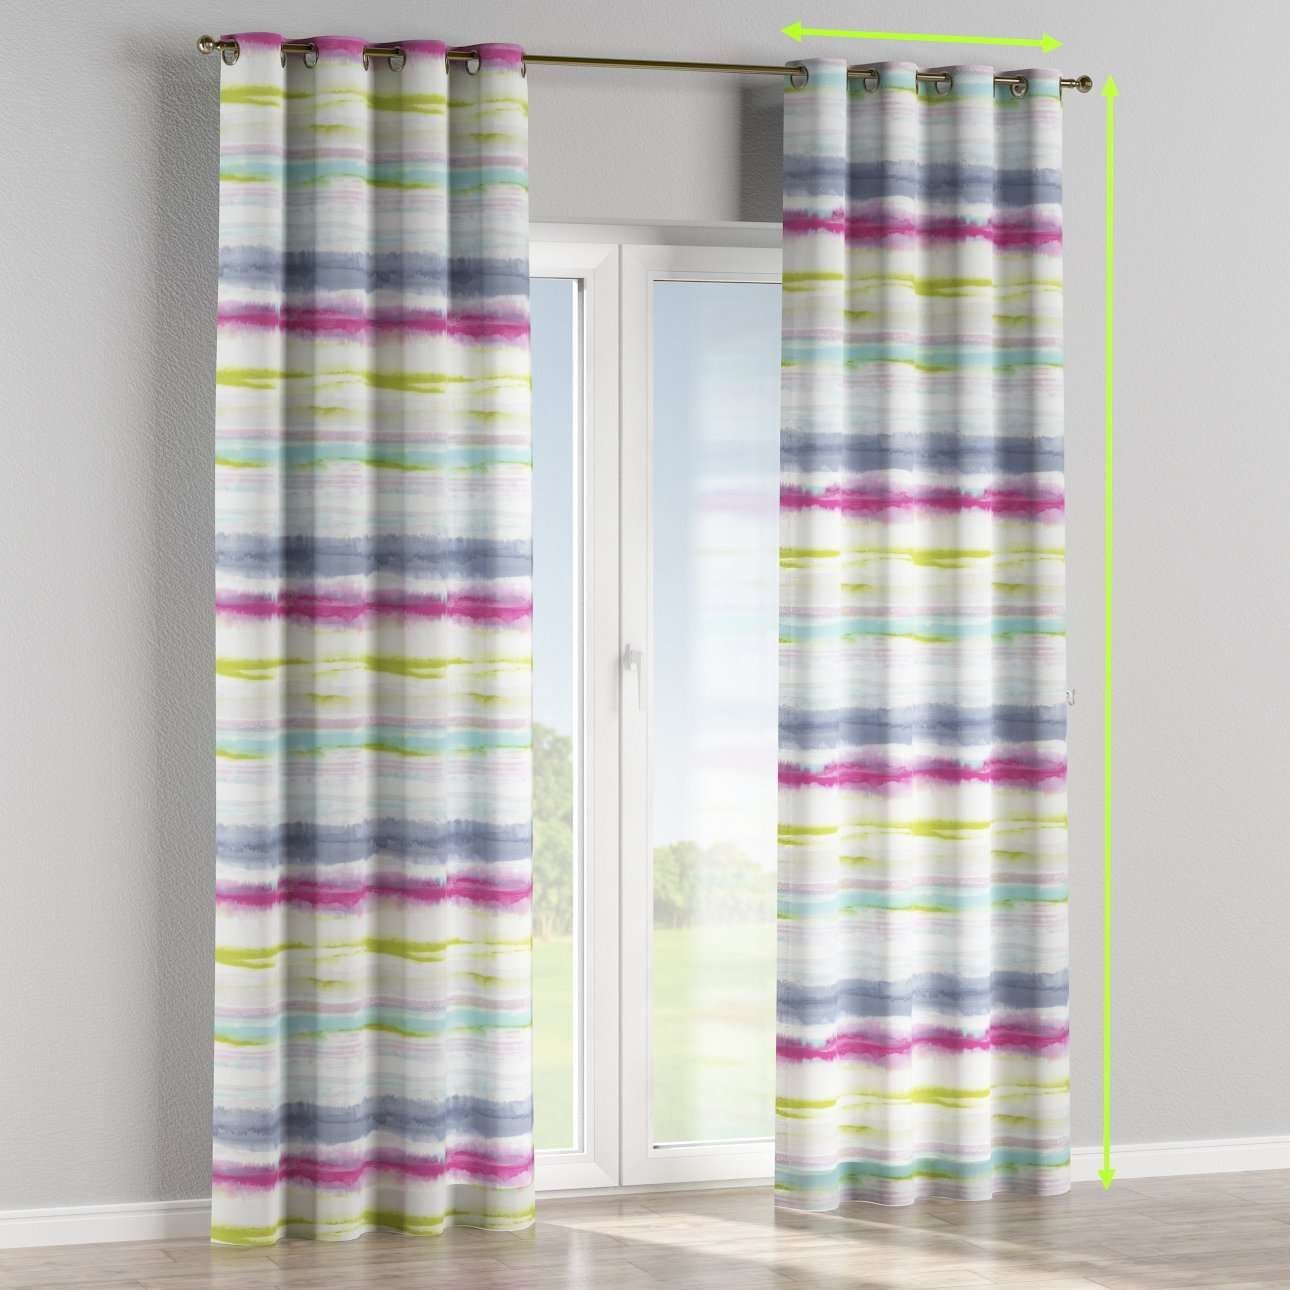 Eyelet lined curtains in collection Aquarelle, fabric: 140-69